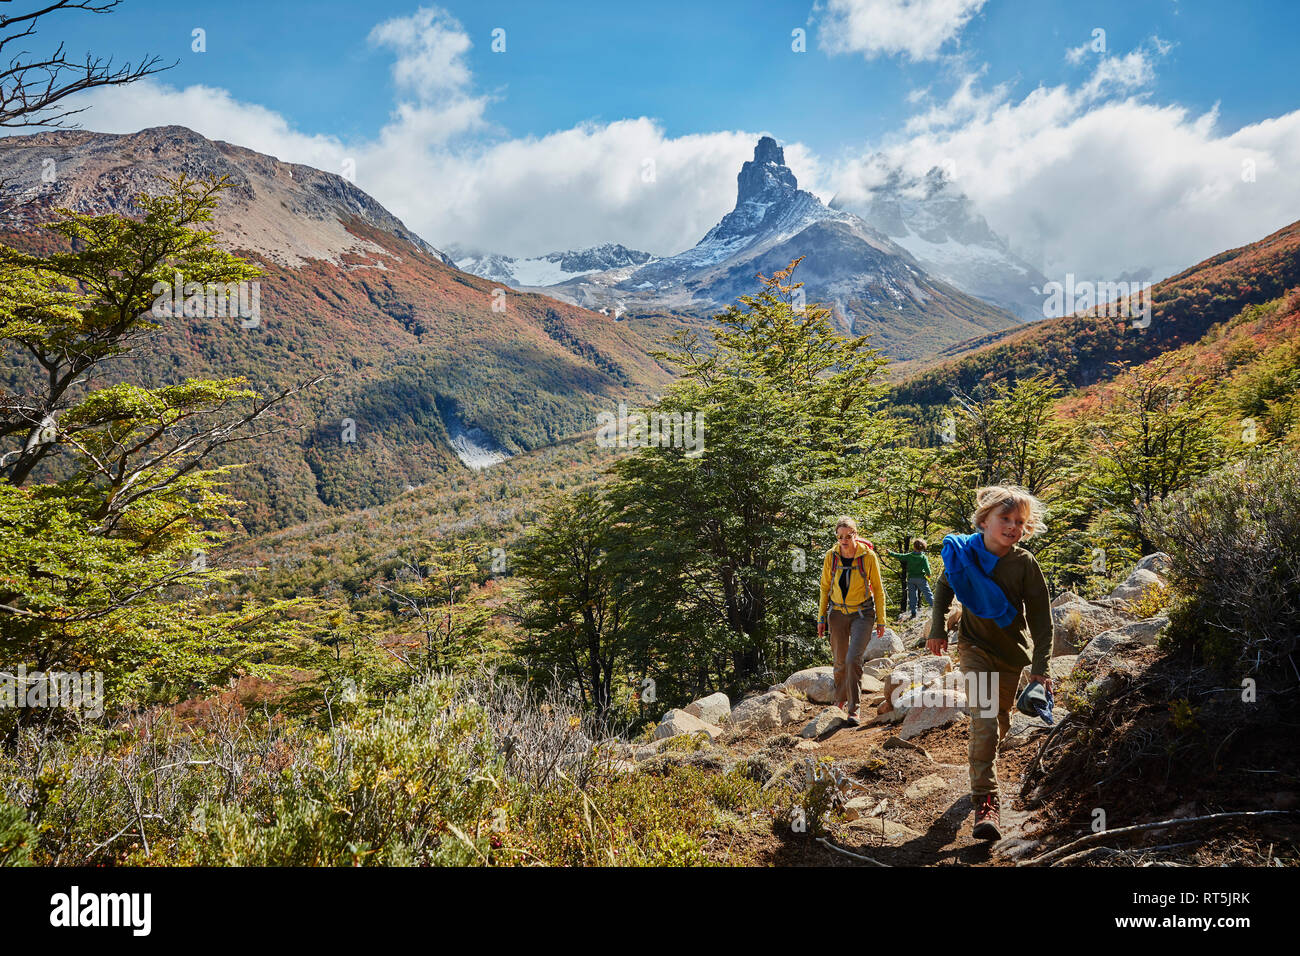 Chile, Cerro Castillo, mother with two sons on a hiking trip in the mountains Stock Photo